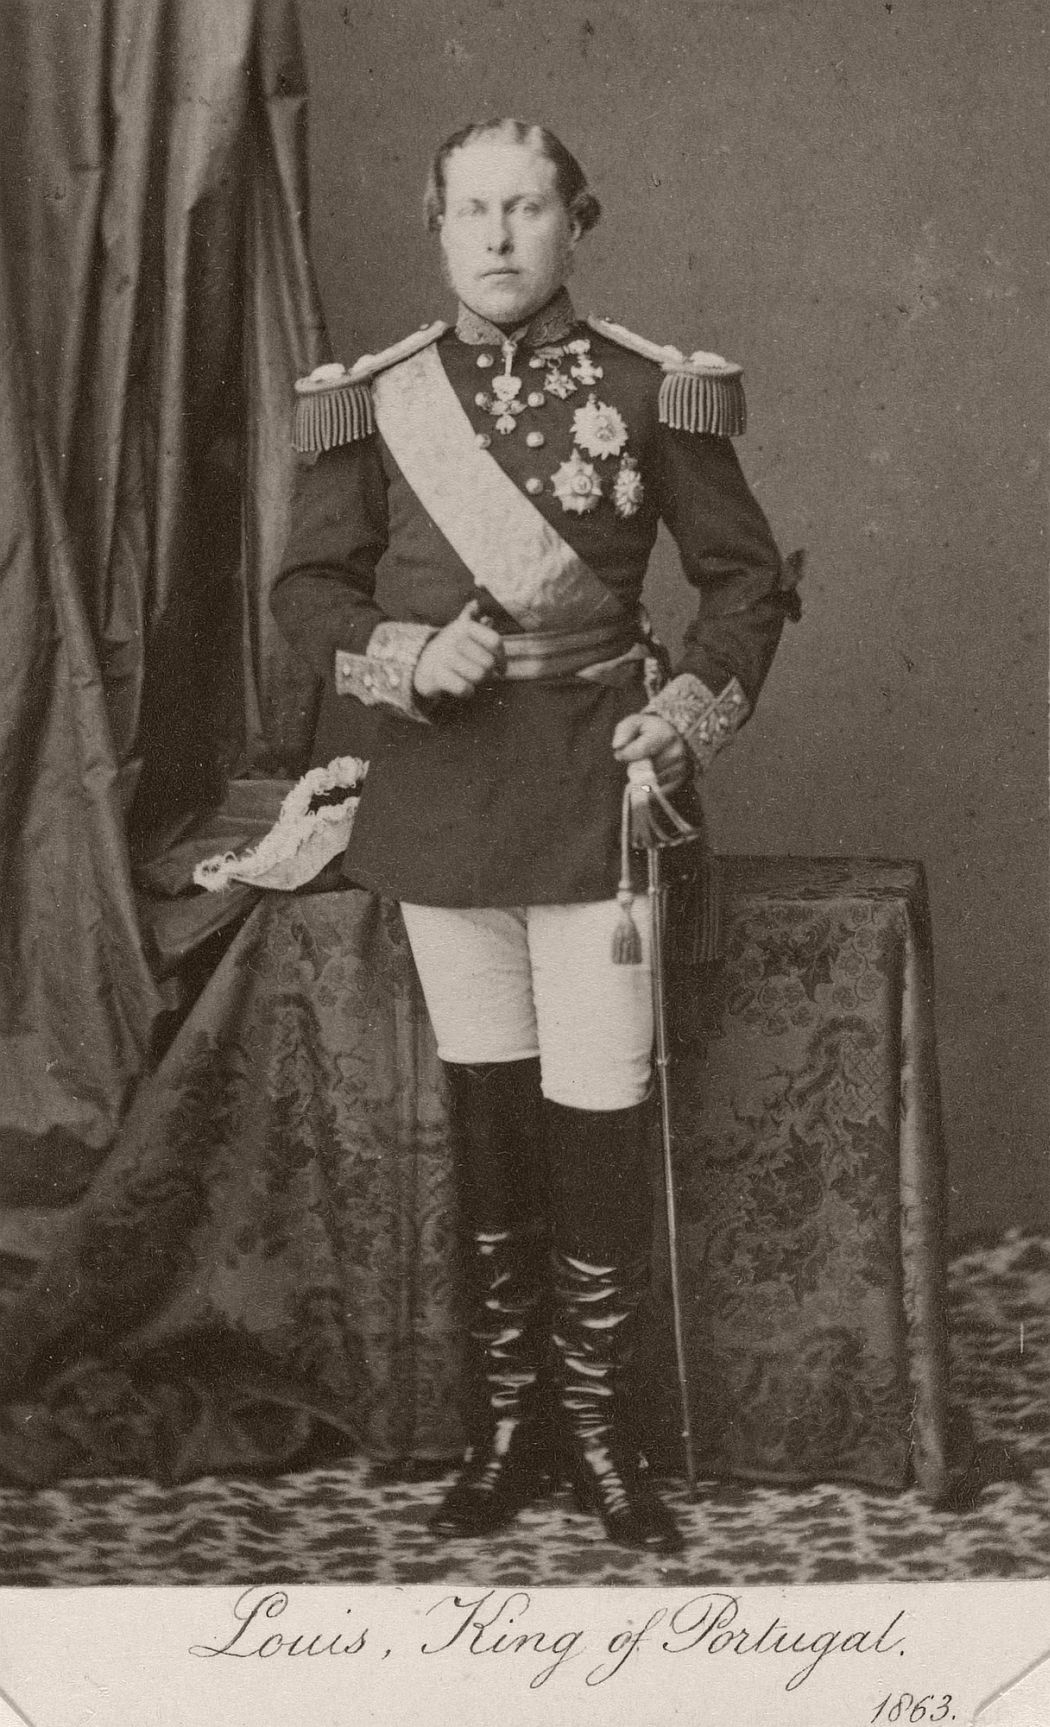 Louis I, King of Portugal (1863), by William Bambridge